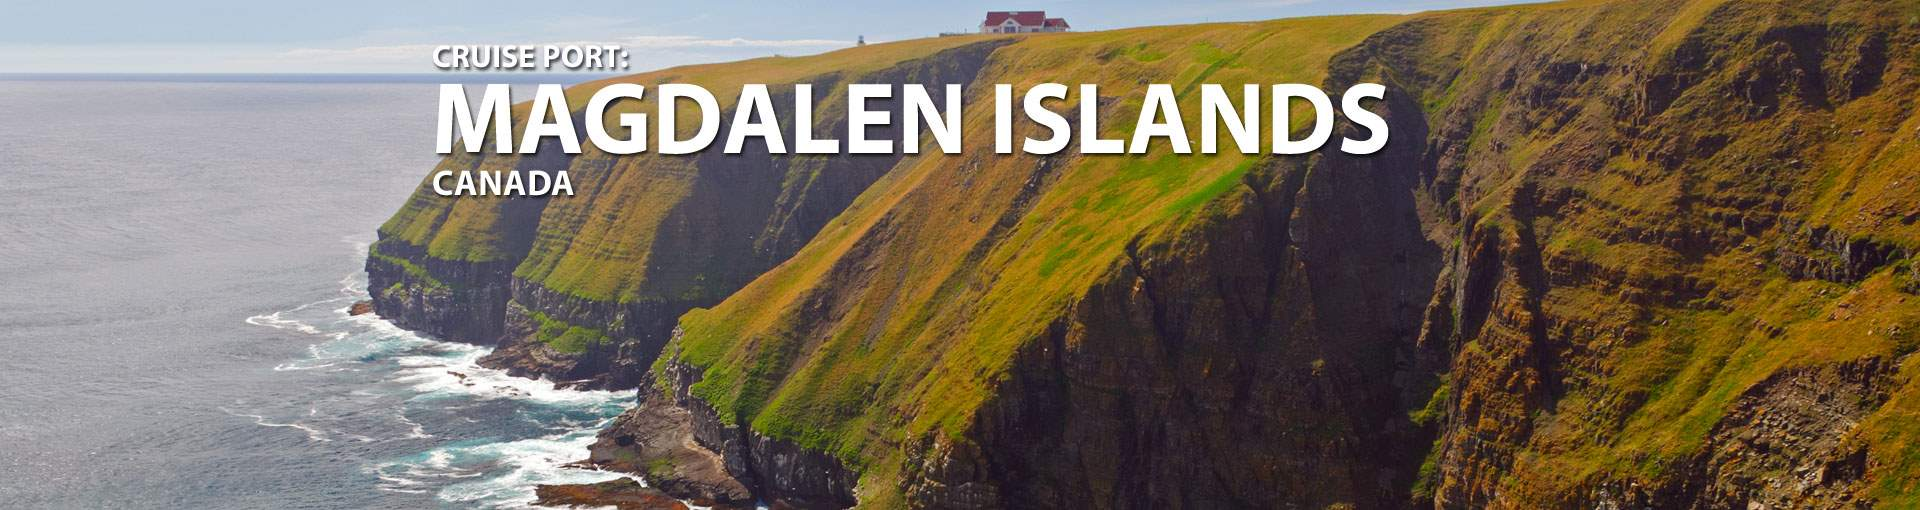 Cruises to Magdalen Islands, Canada